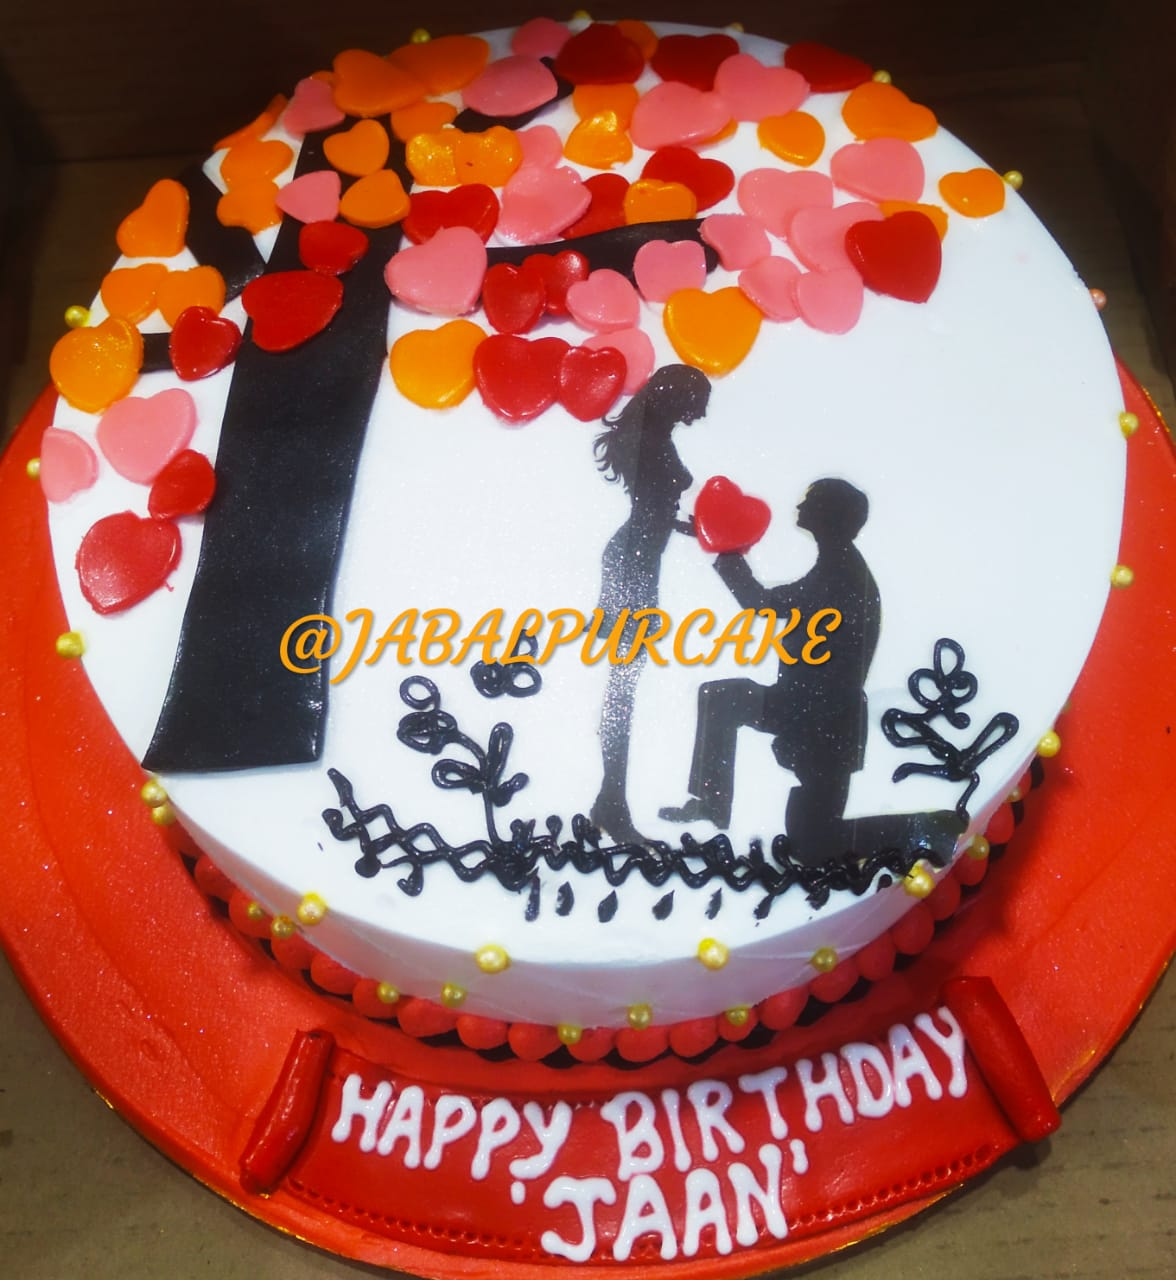 Surprising Proposal Of Love Cake Cake For Special Day Jabalpurcakedelivery Funny Birthday Cards Online Elaedamsfinfo